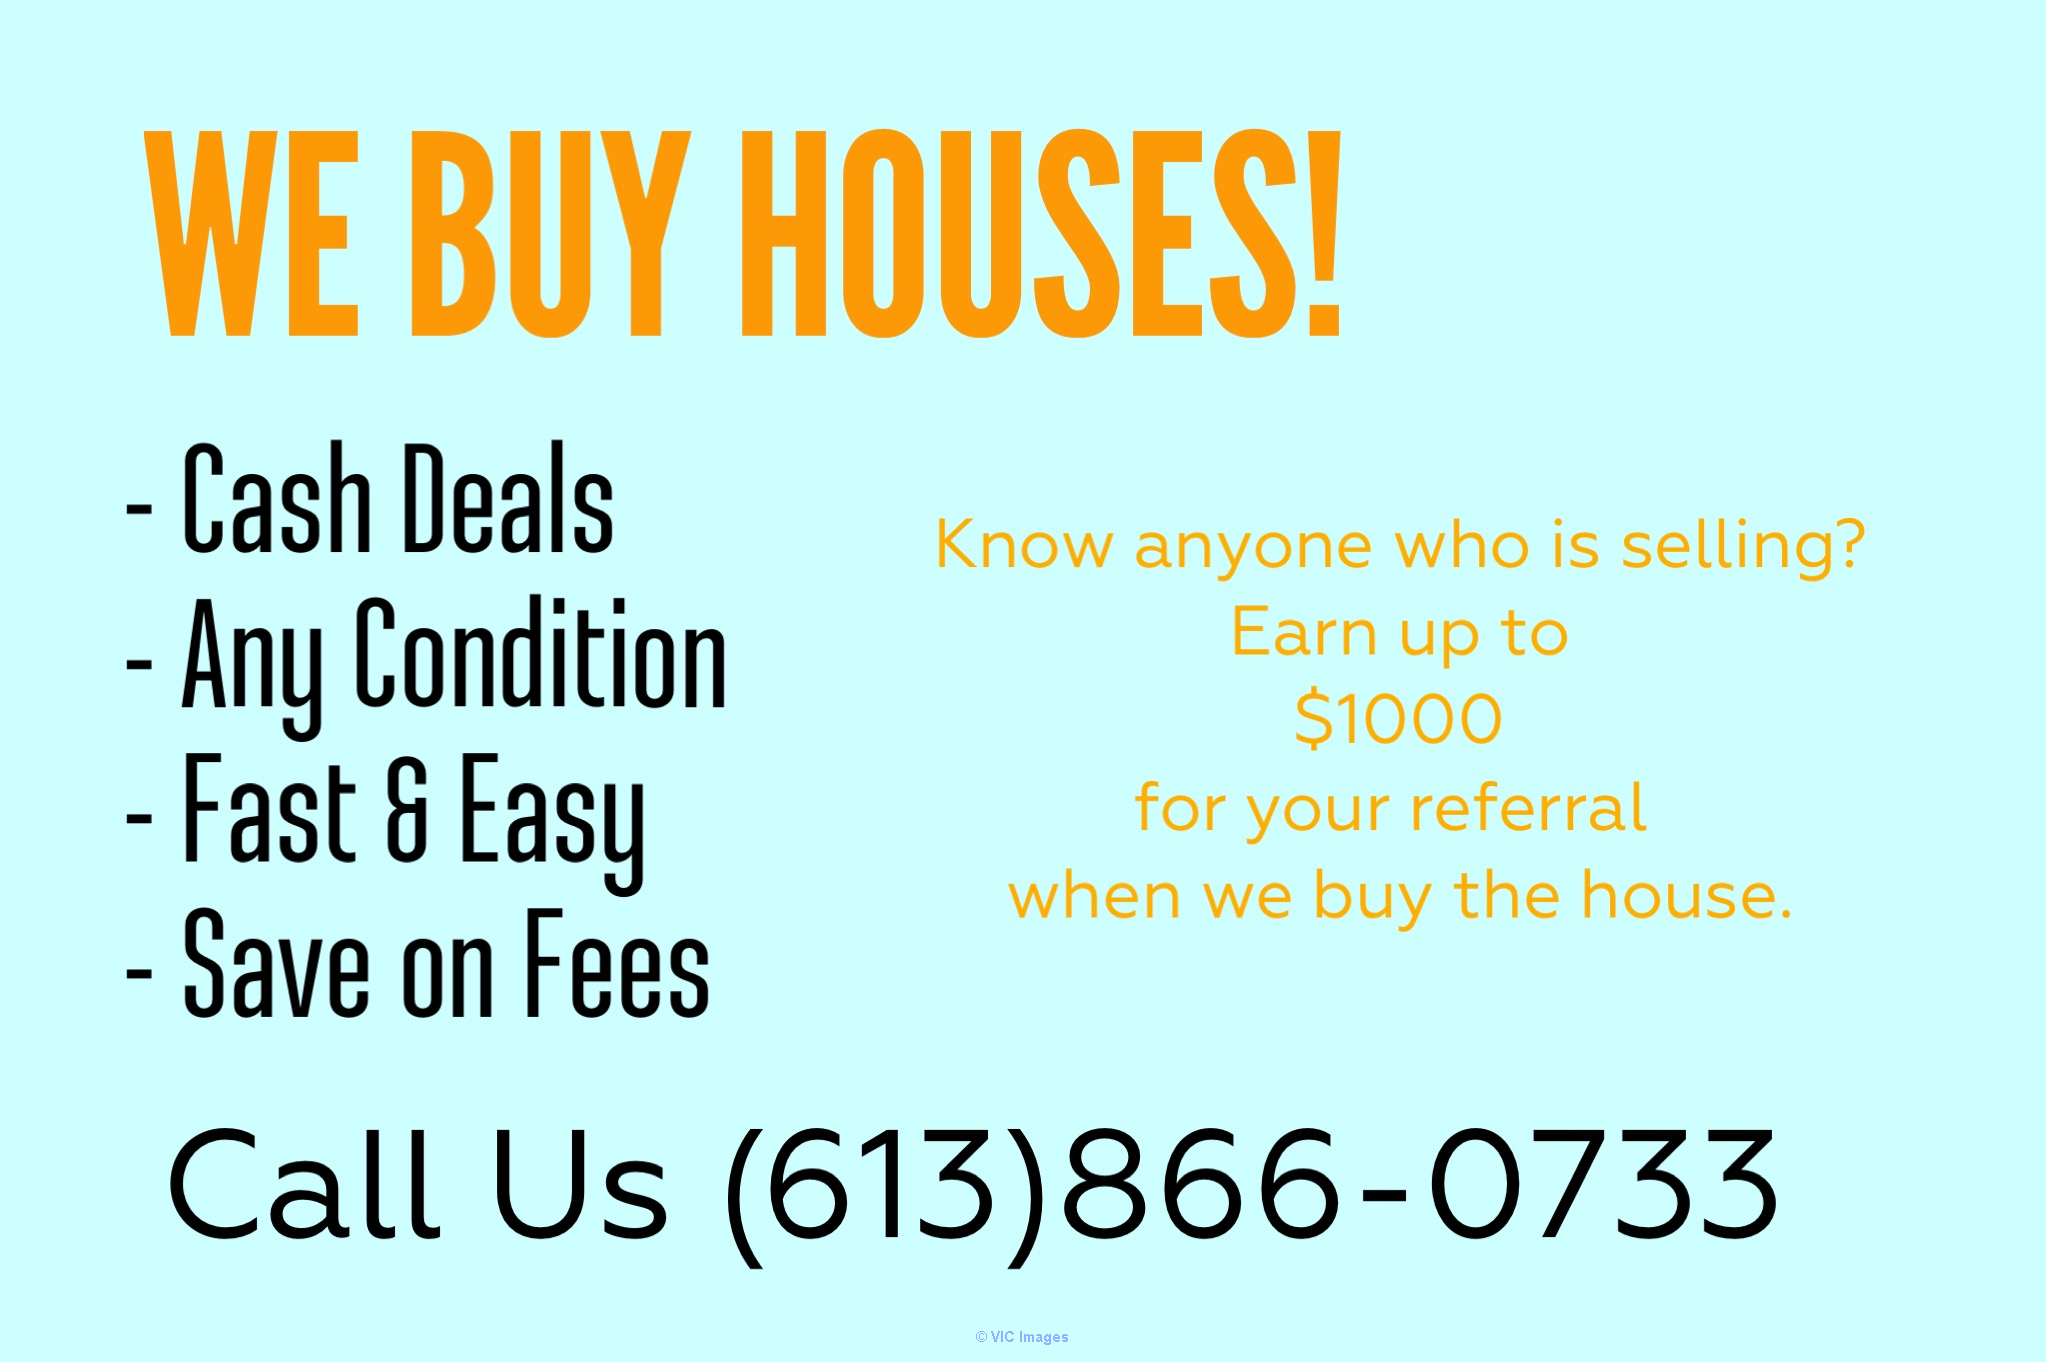 We Buy Houses in Any Condition, Cash! ottawa